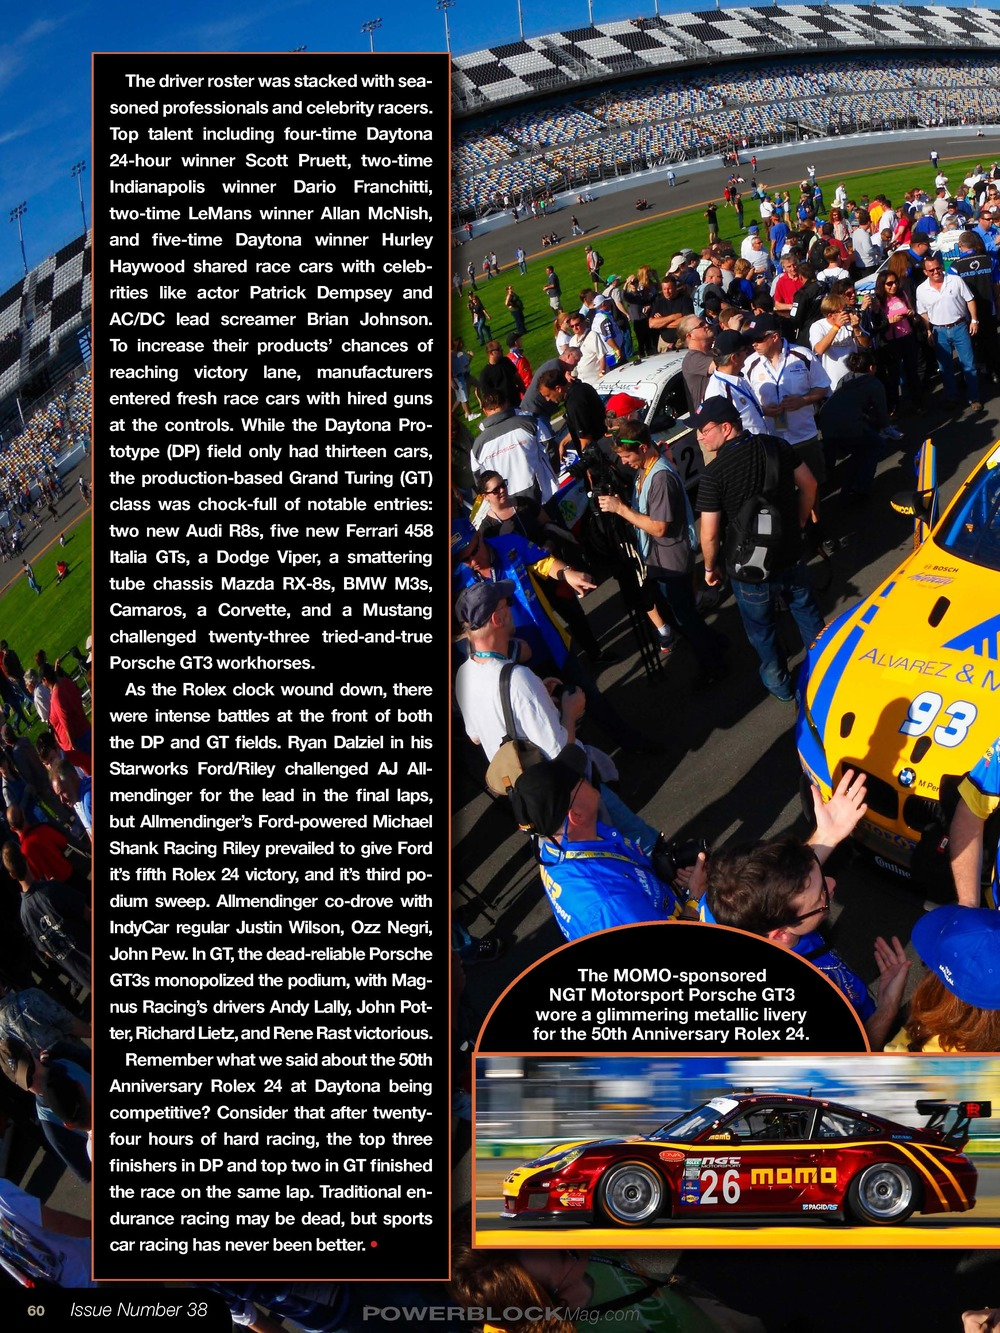 powerblockmagazine_issue38_rolex24_Page_06.jpg